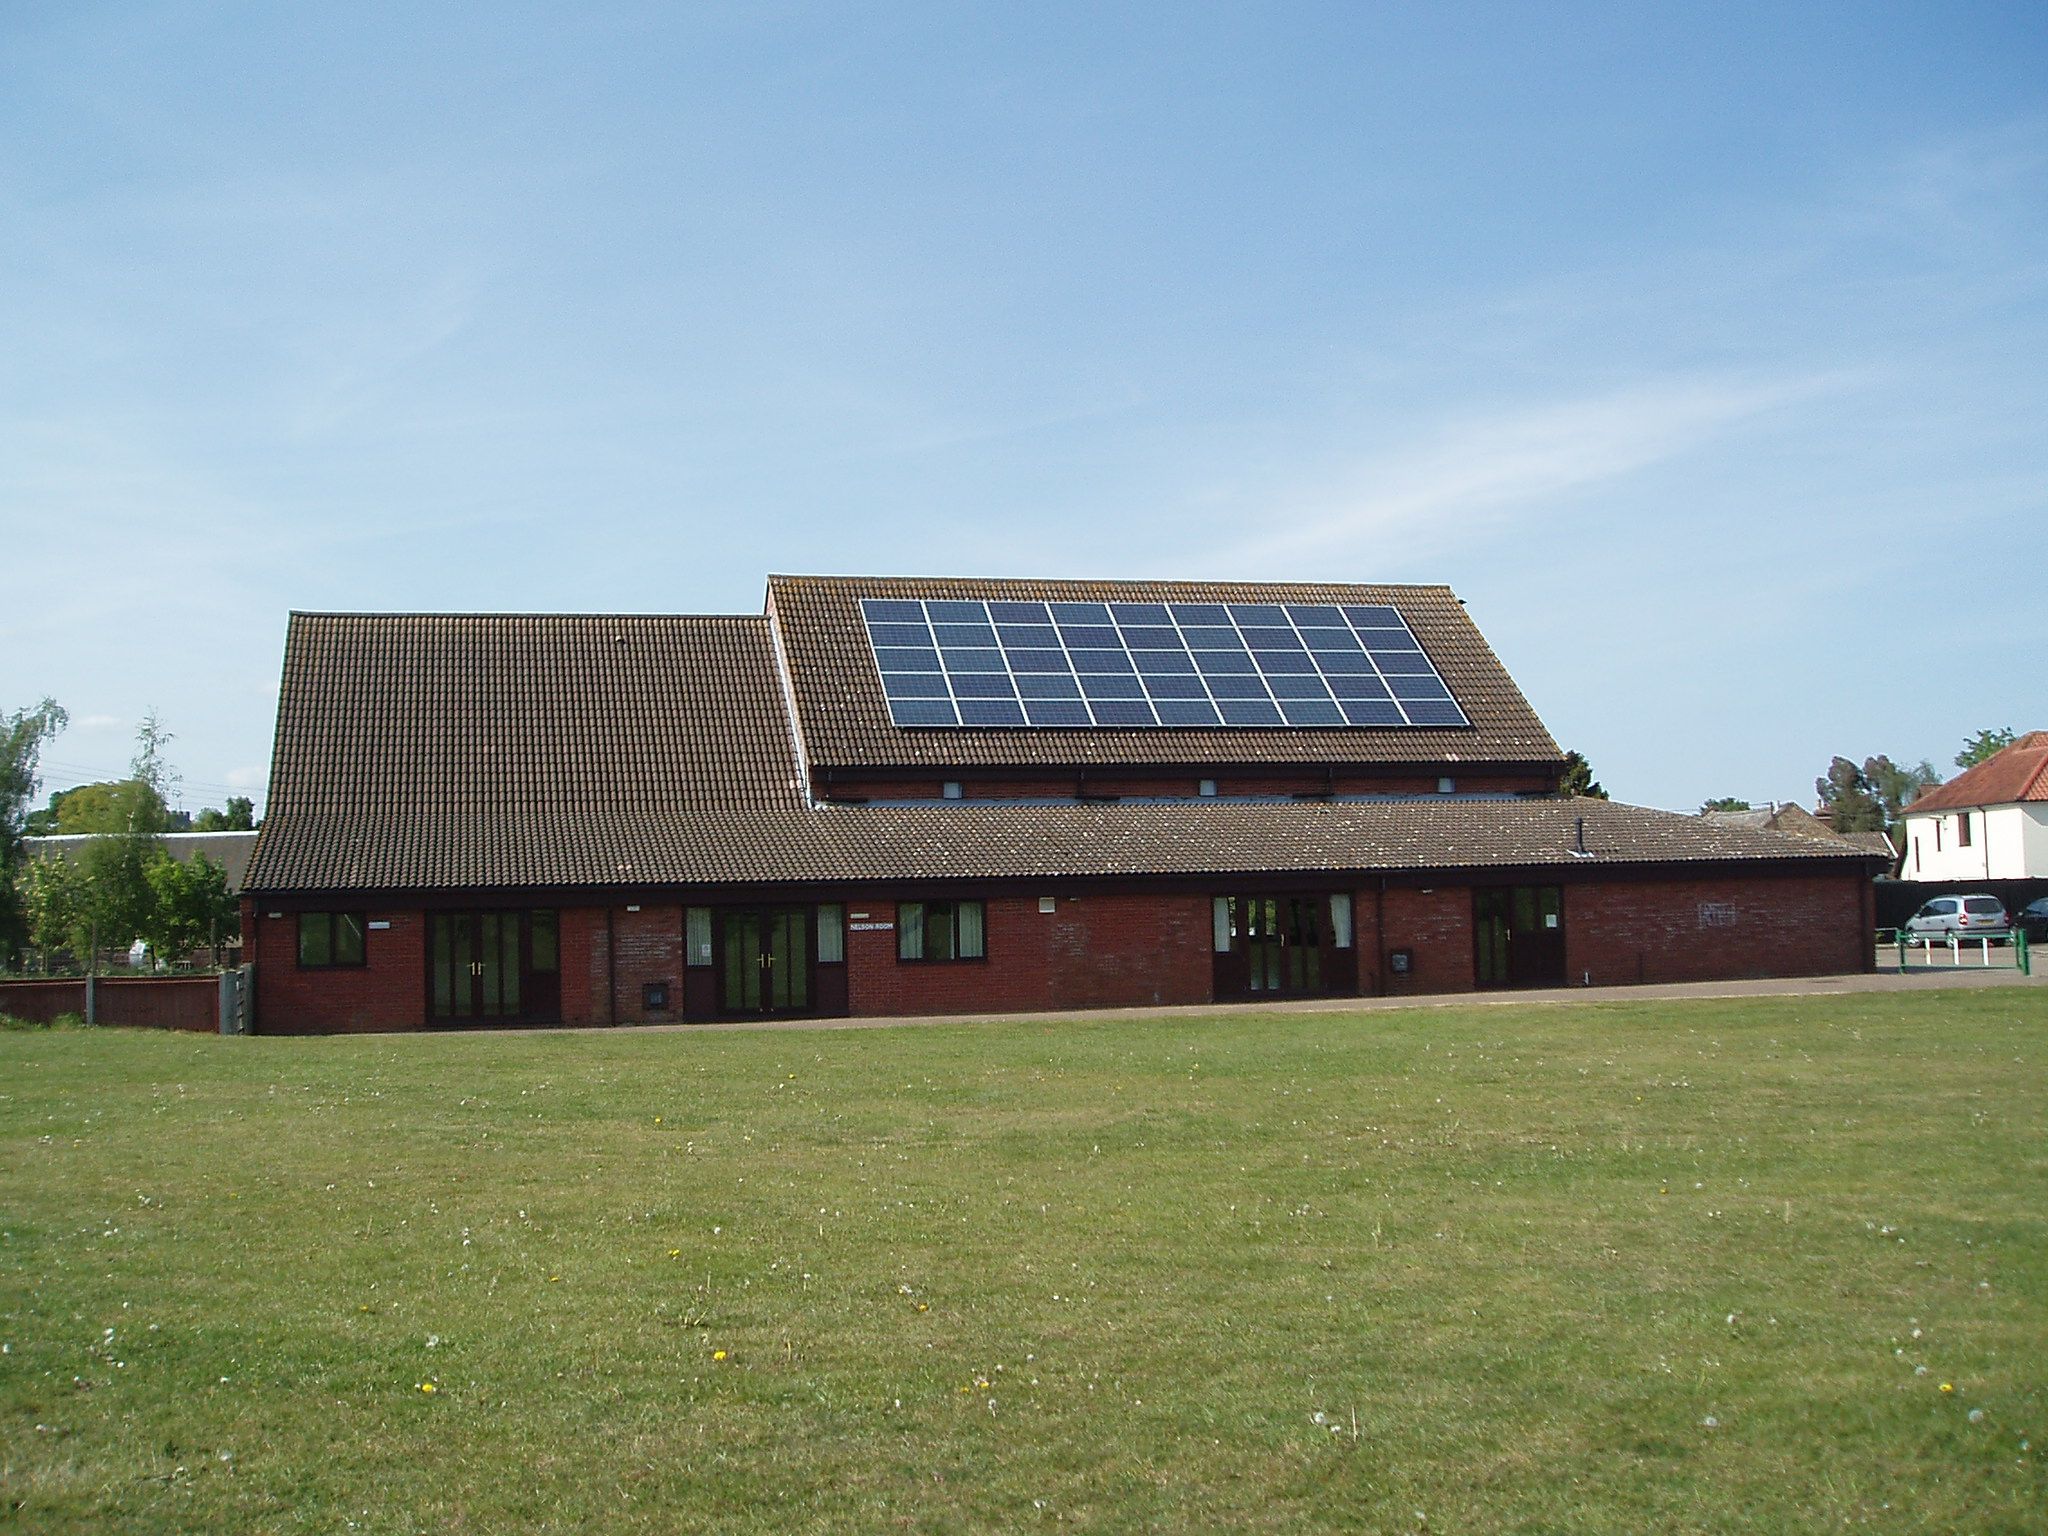 Hempnall Village Hall